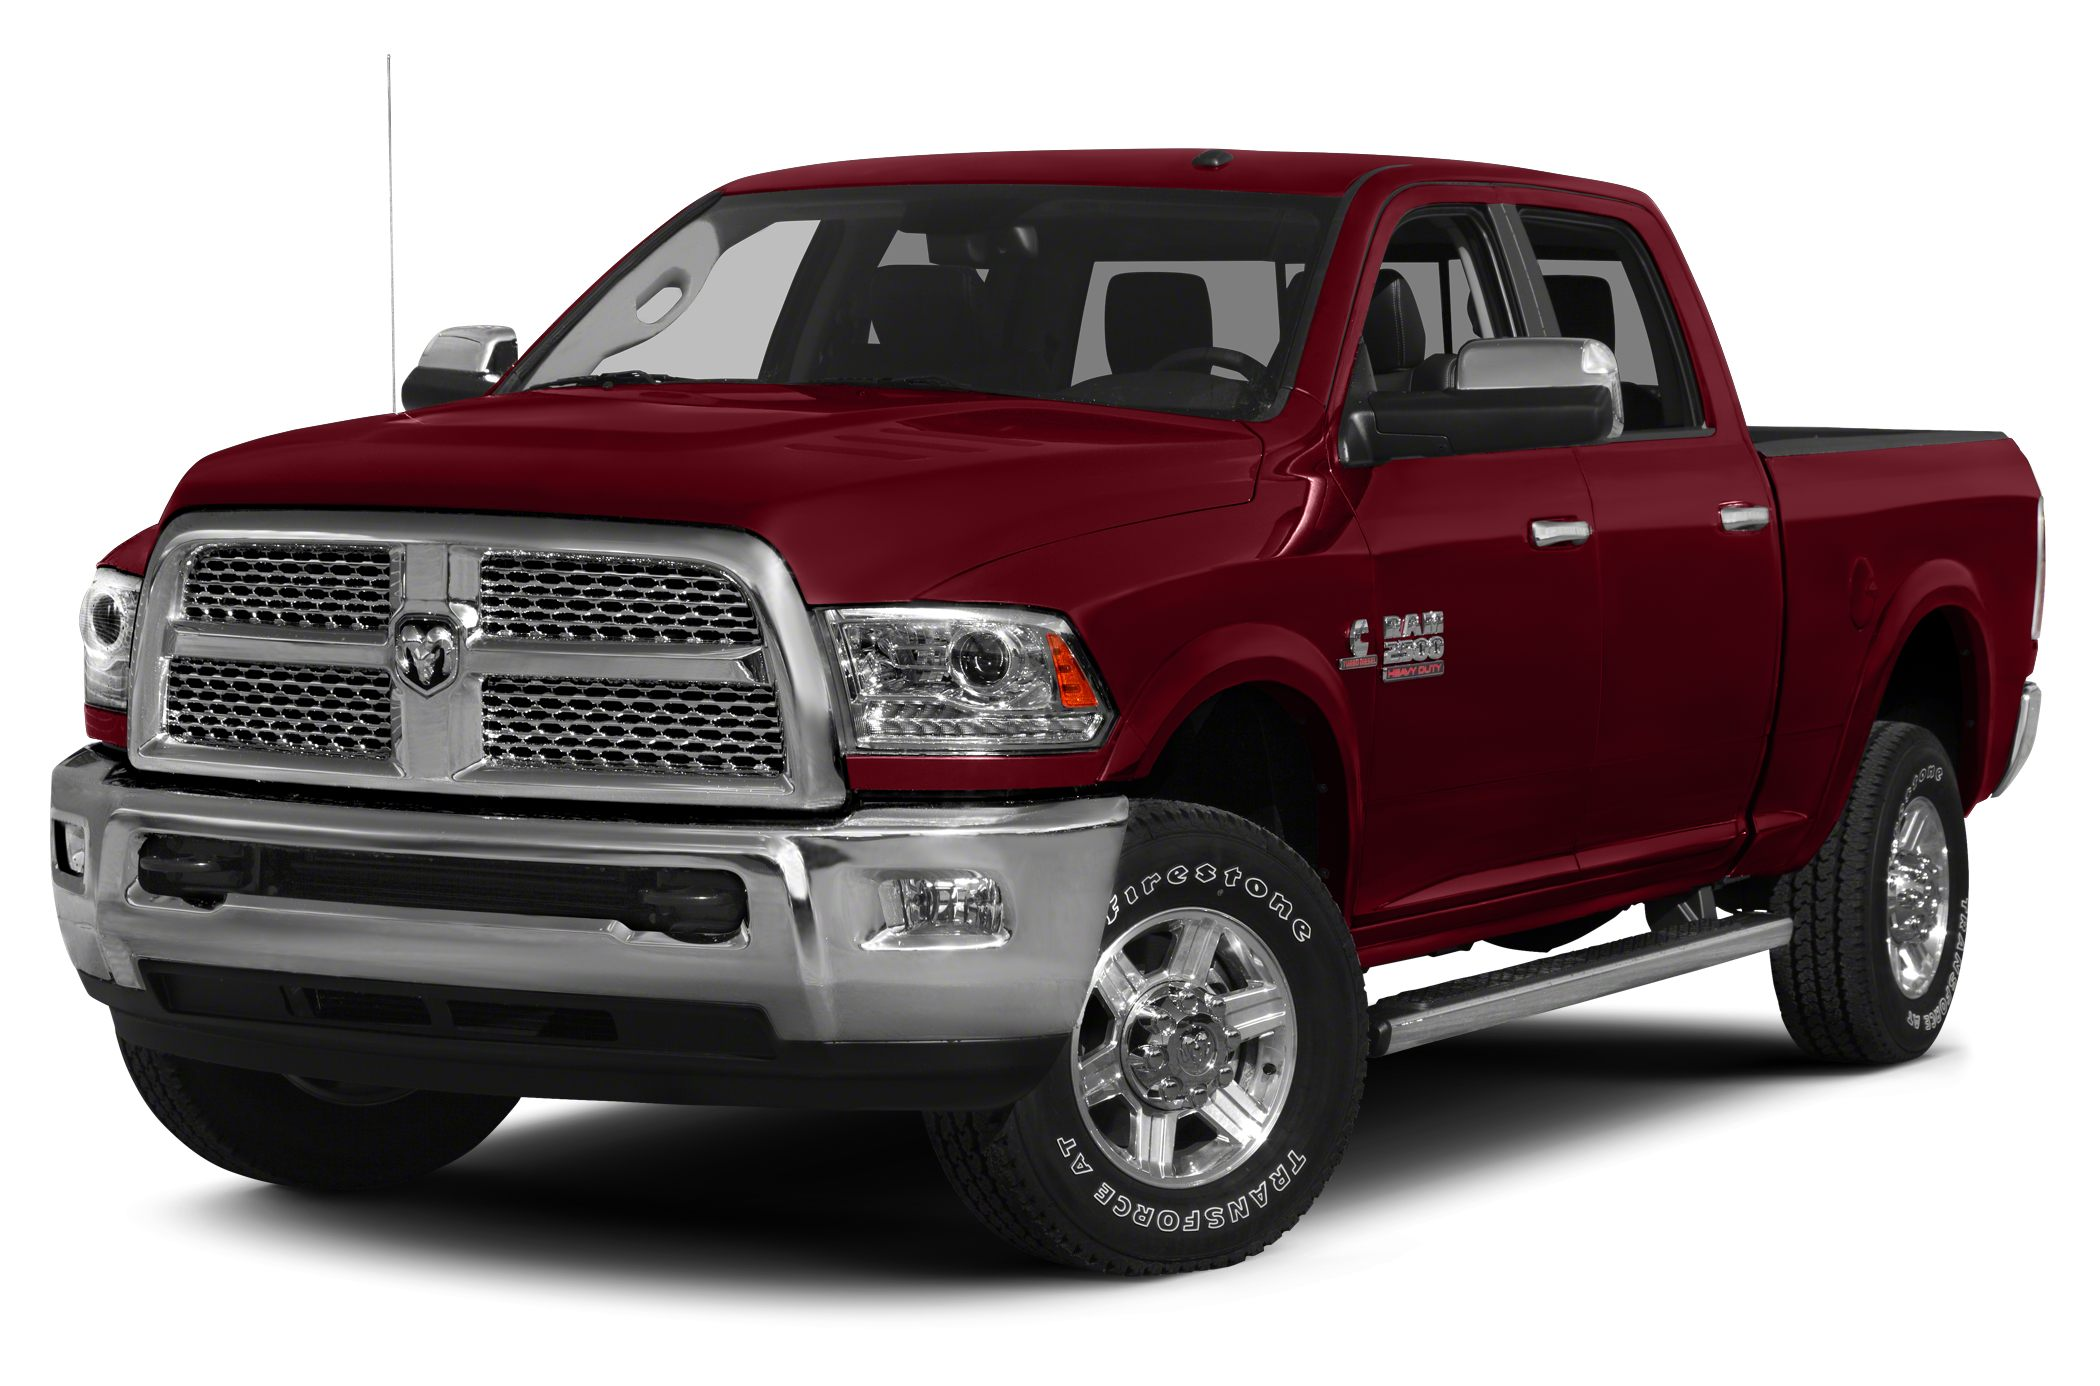 2015 RAM 2500 Laramie Crew Cab Pickup for sale in Fargo for $53,925 with 12 miles.